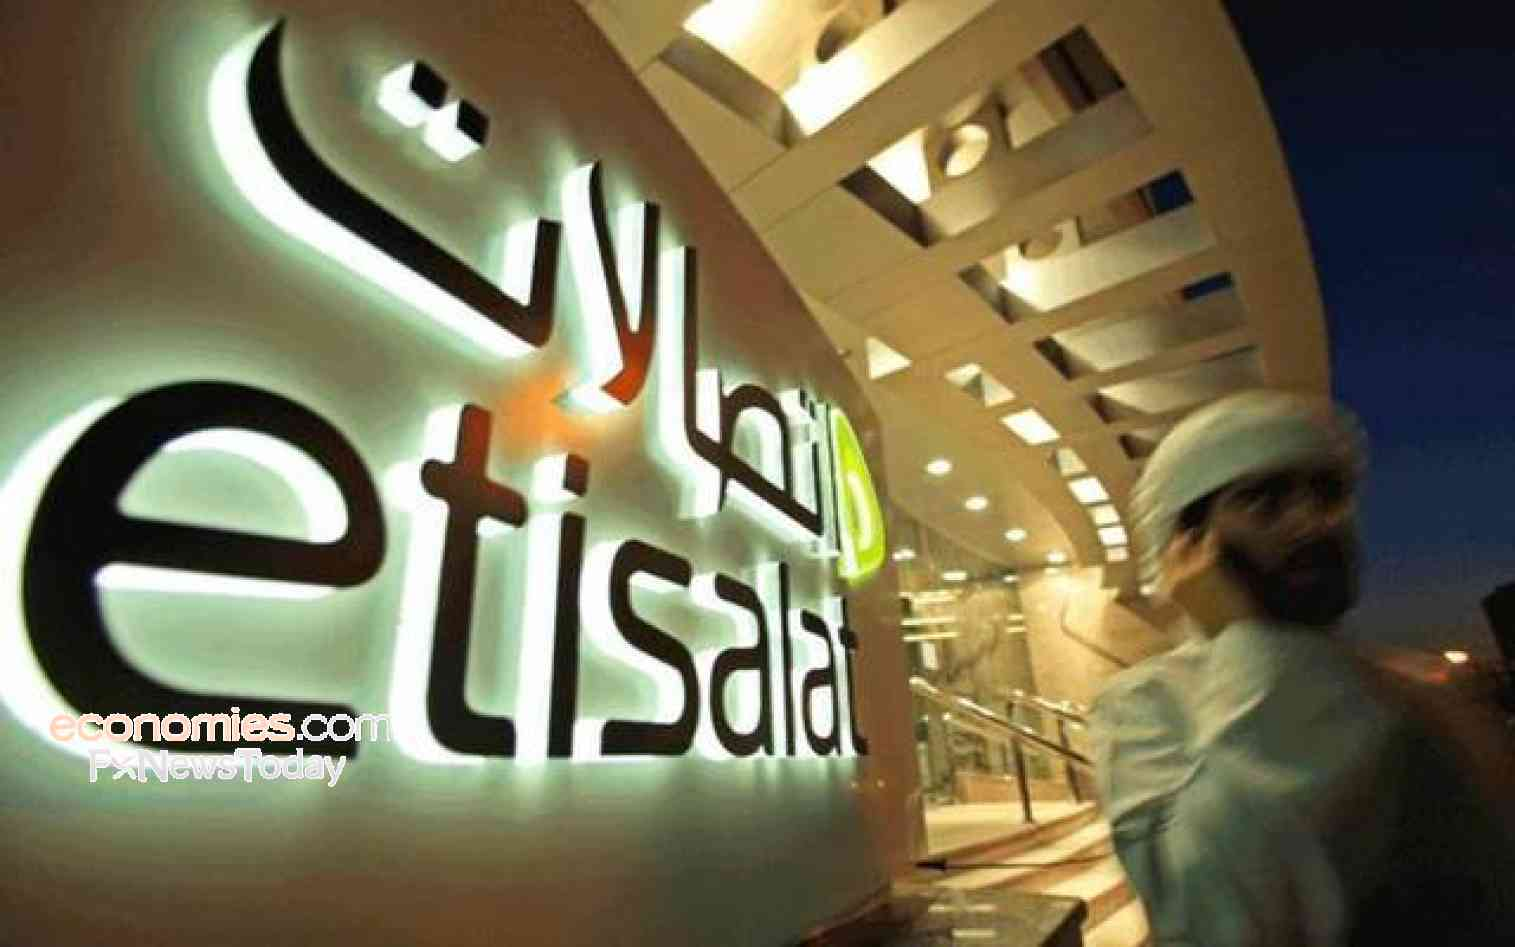 UAE's Etisalat in talks to acquire stake in Kazakhtelecom